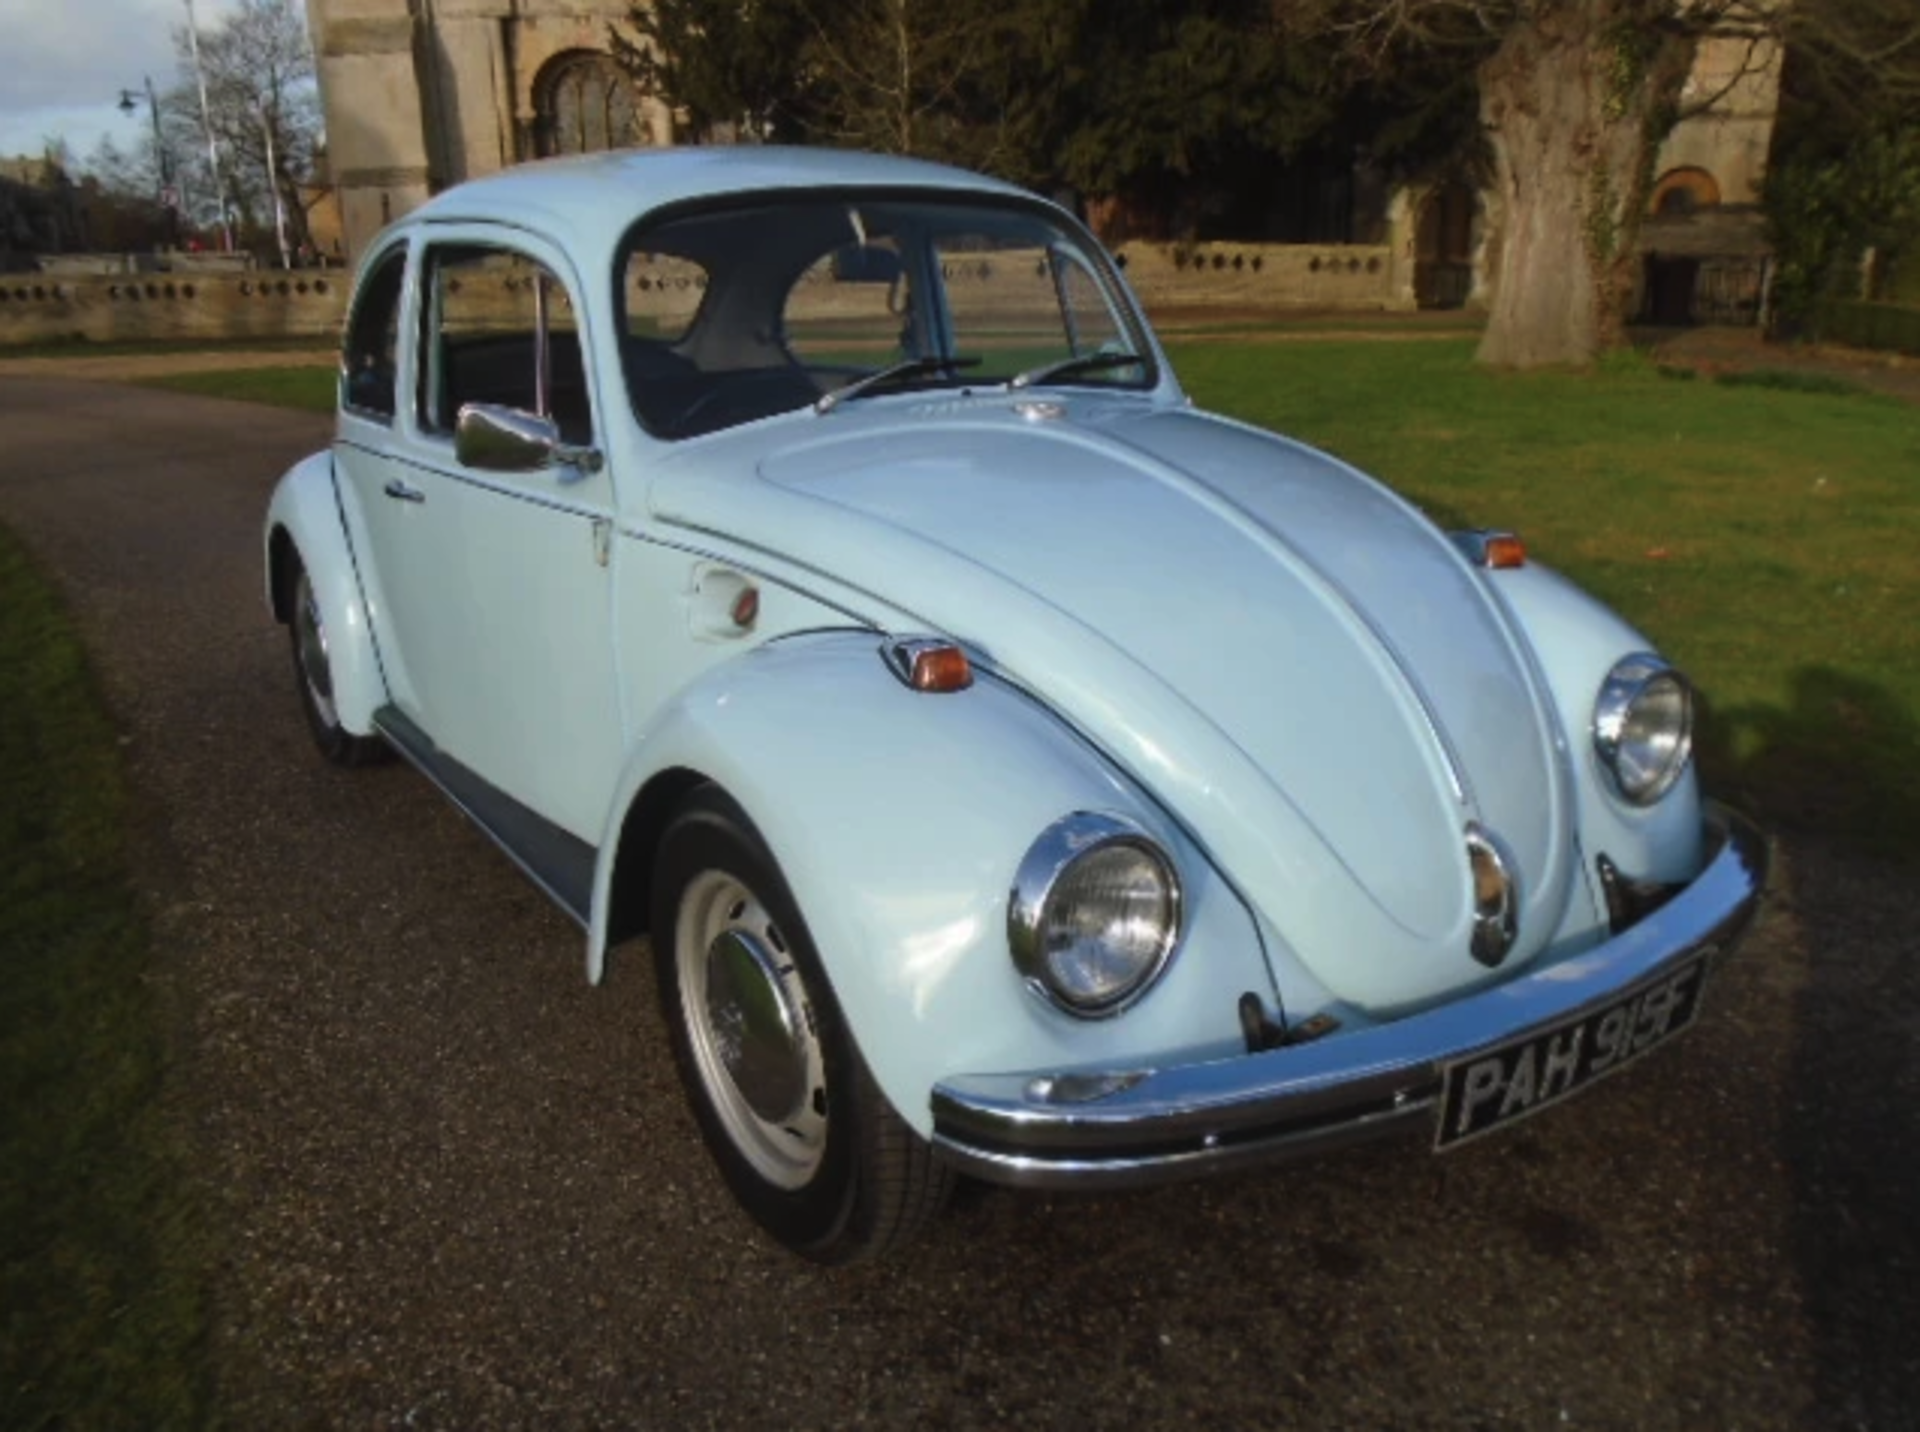 Lot 25 - 1968 Volkswagen Beetle 1500